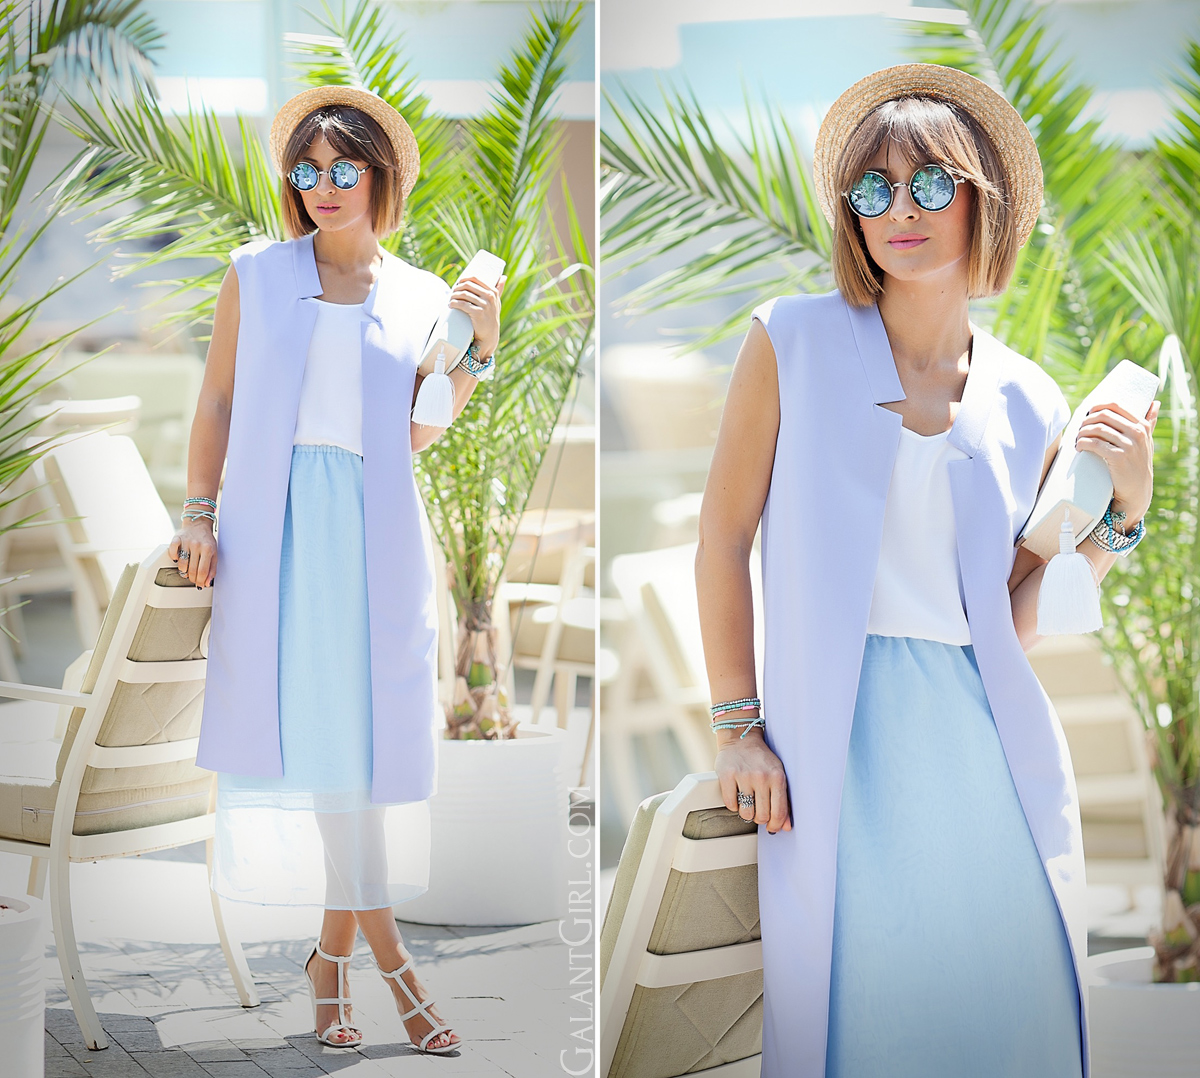 pastel-summer-outfit-with-long-vest-on-galant-girl